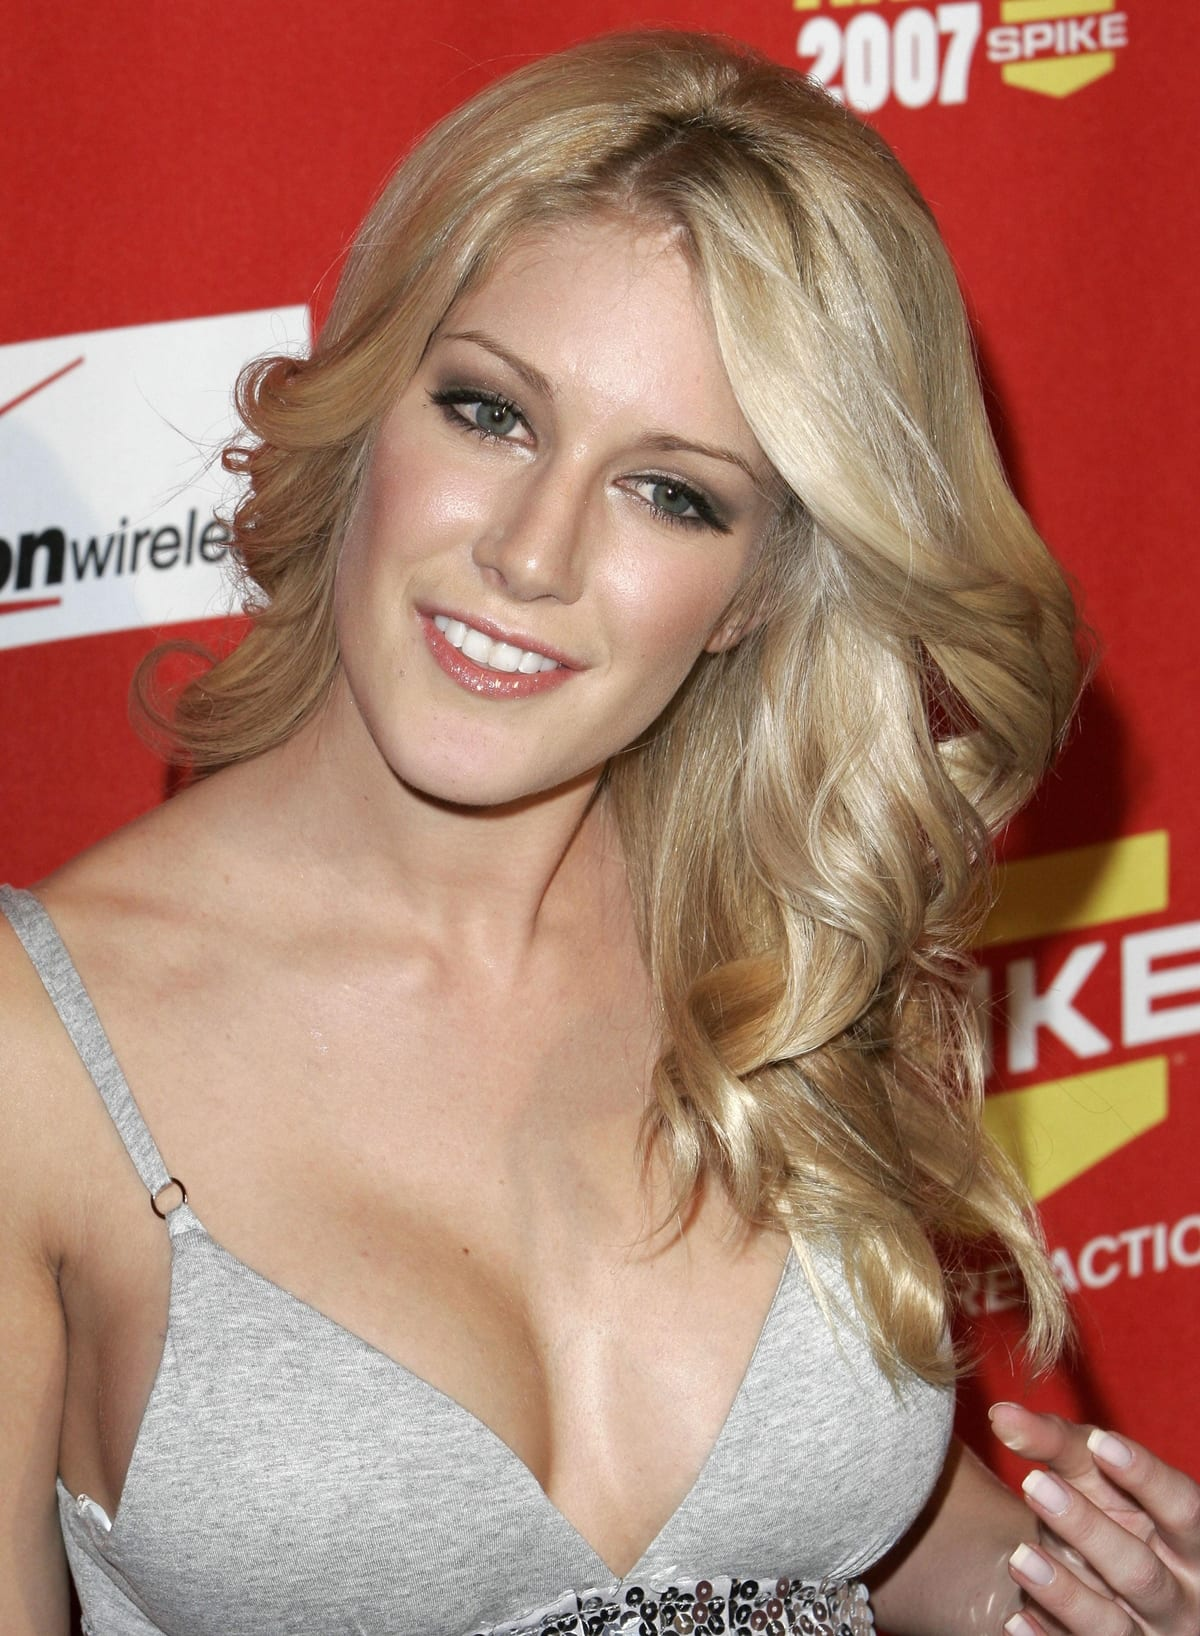 Heidi Montag highlights her boobs in a LaRok mirage sequined dress